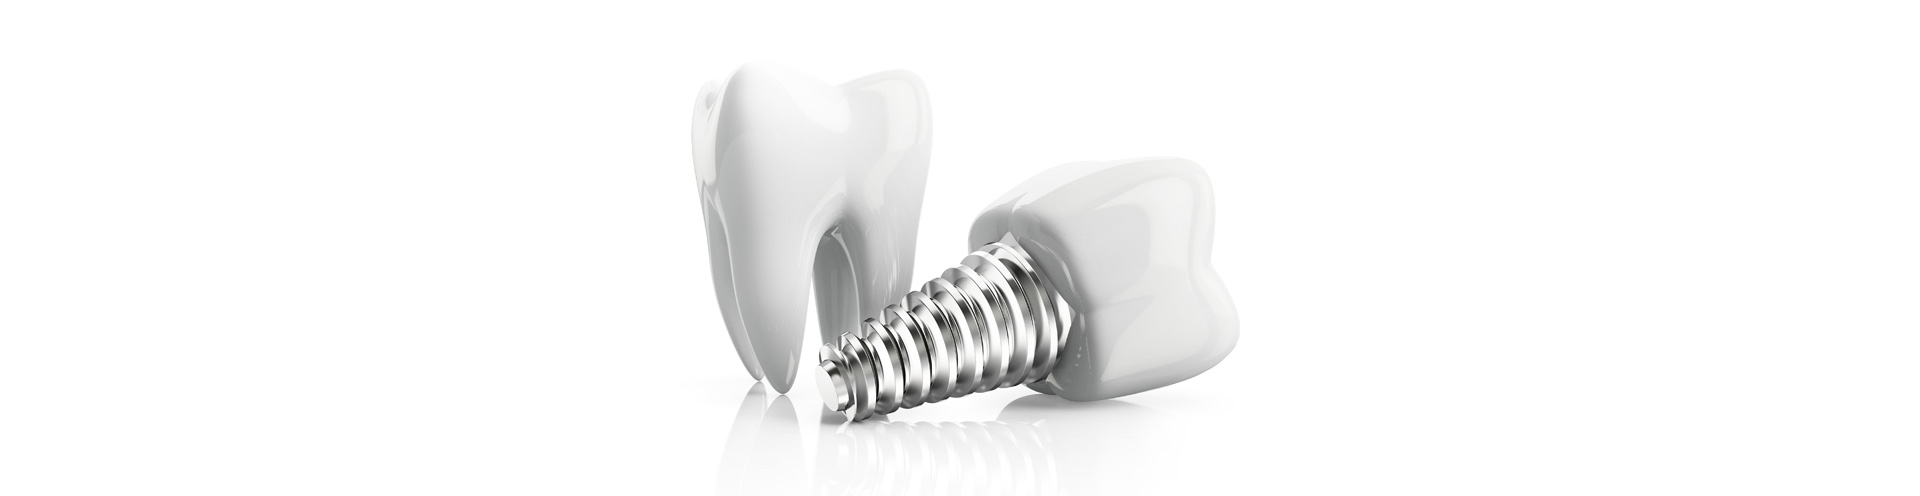 Dental Implants Can Be Used To Replace